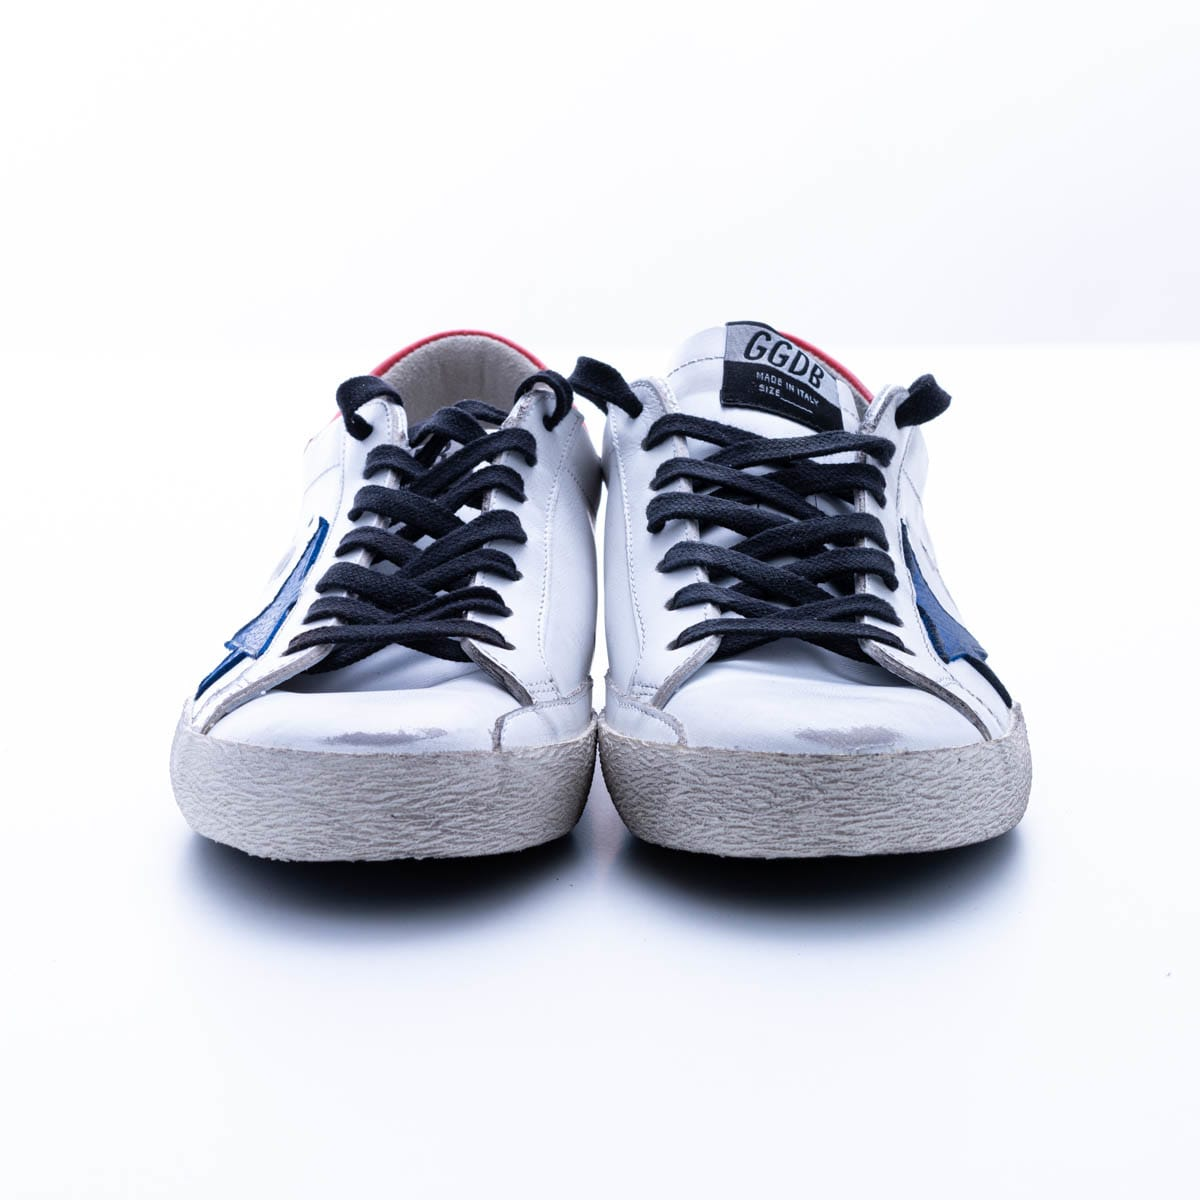 Golden Goose Superstar With Lst Sneaker In White - Bluette - Red